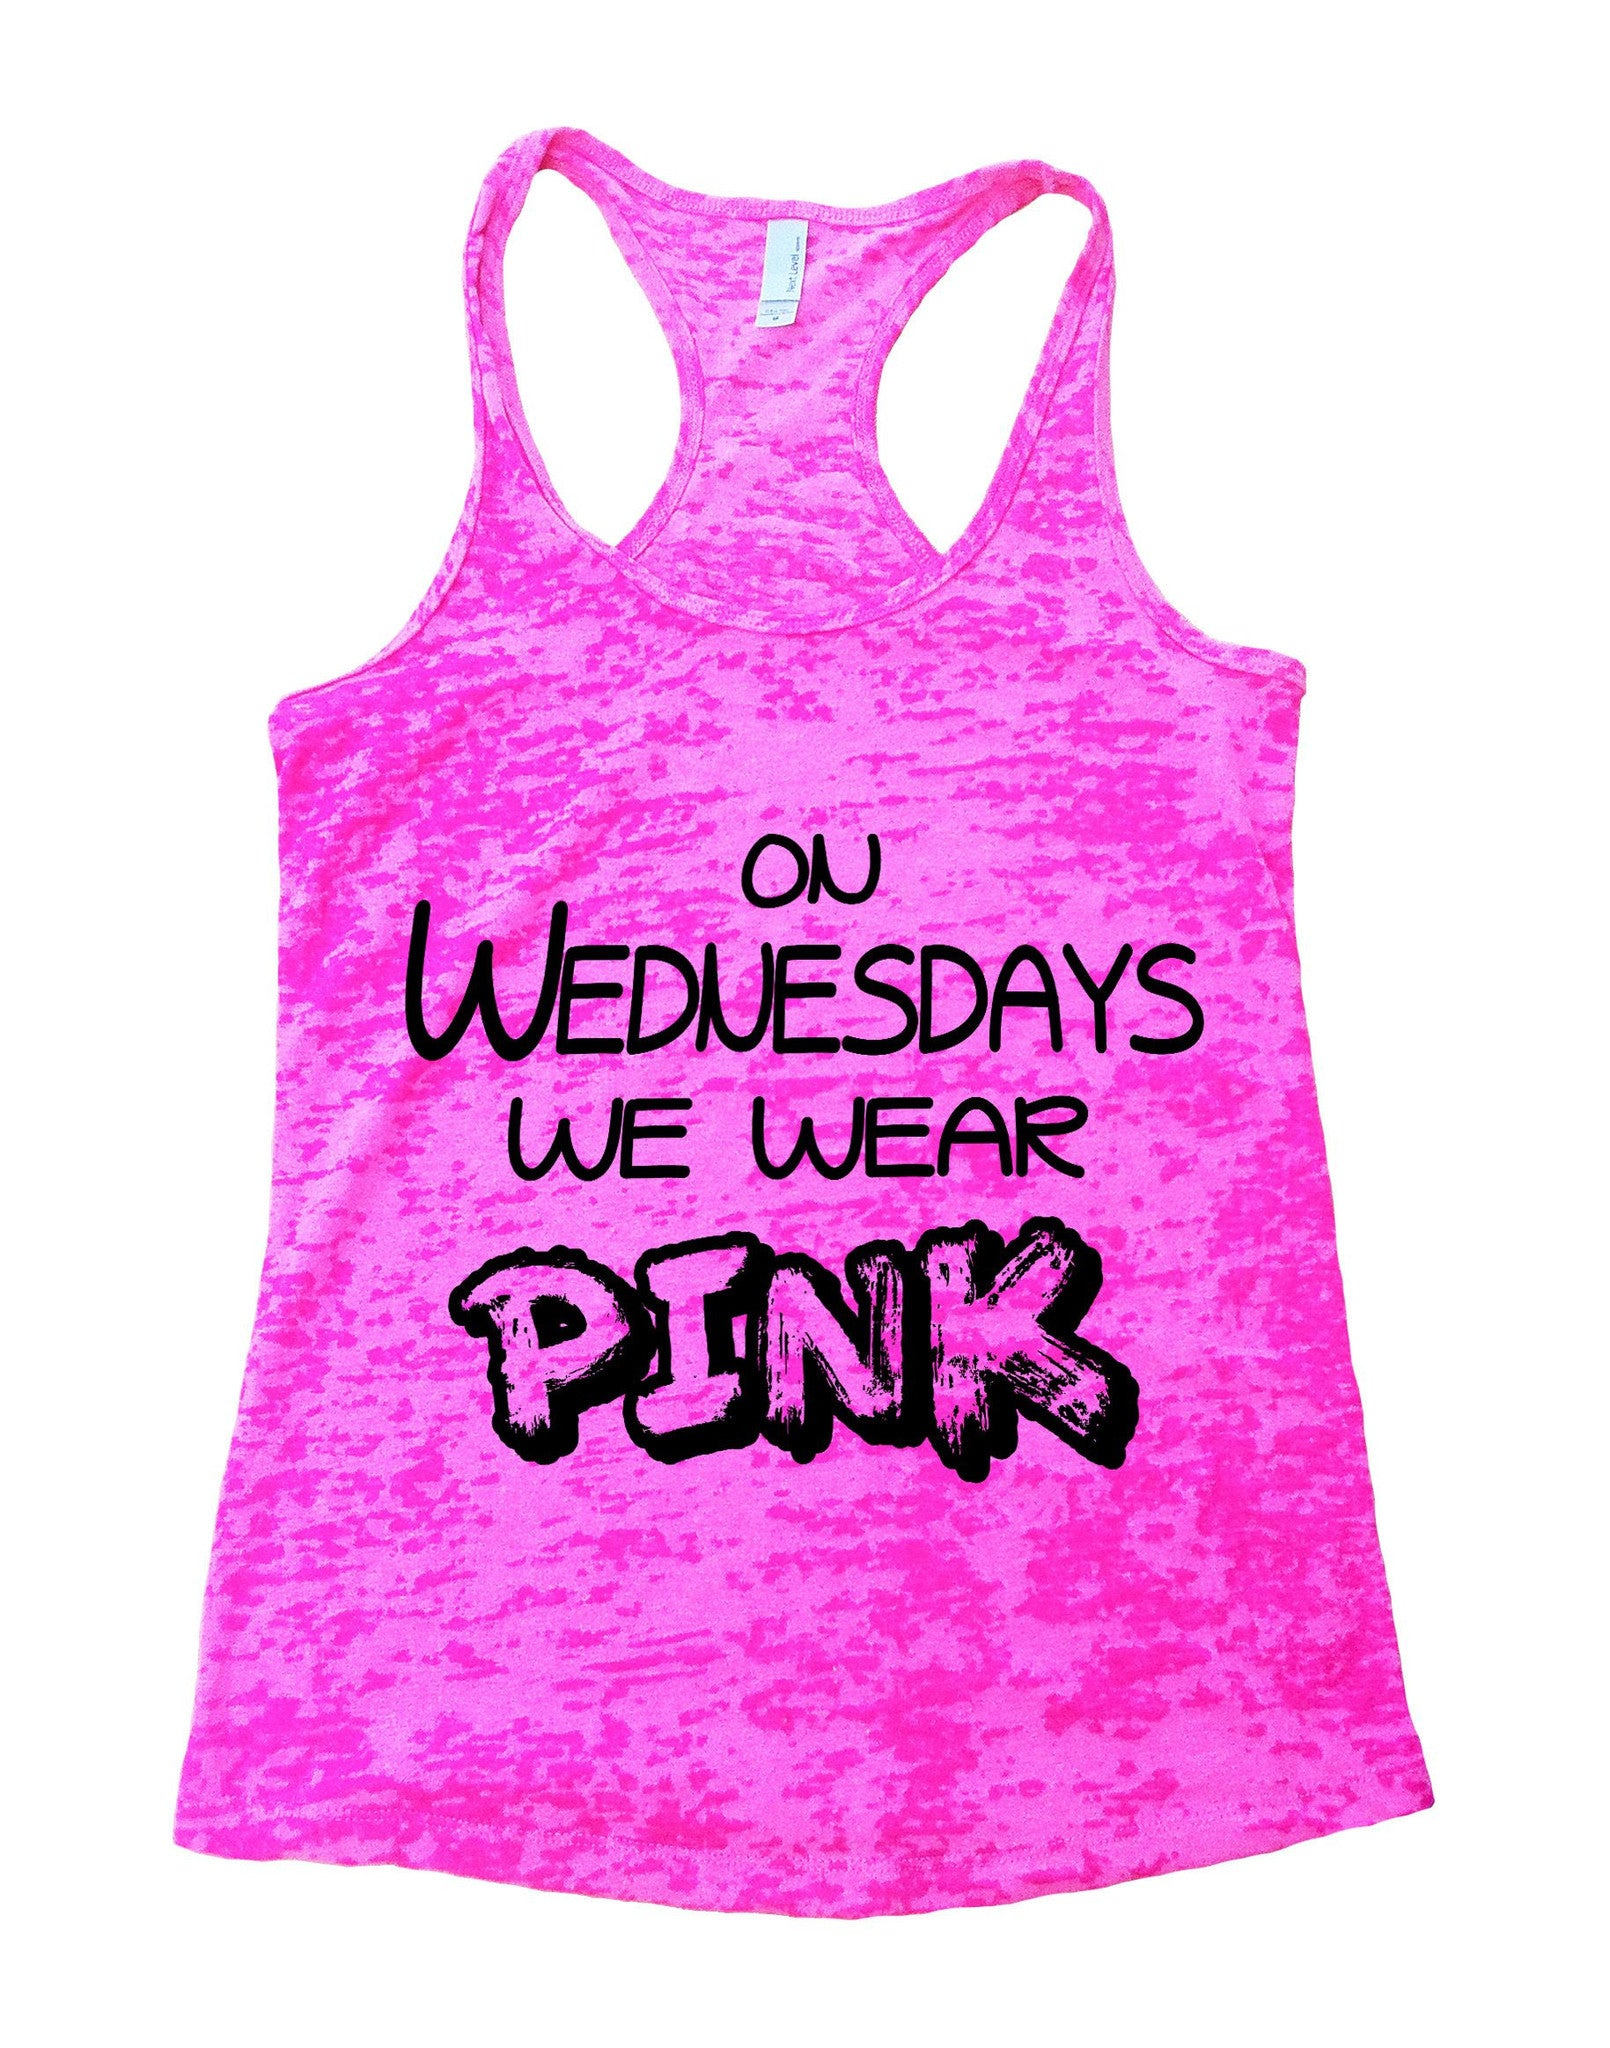 On Wednesdays We Wear Pink Burnout Tank Top By BurnoutTankTops.com - 537 - Funny Shirts Tank Tops Burnouts and Triblends  - 1